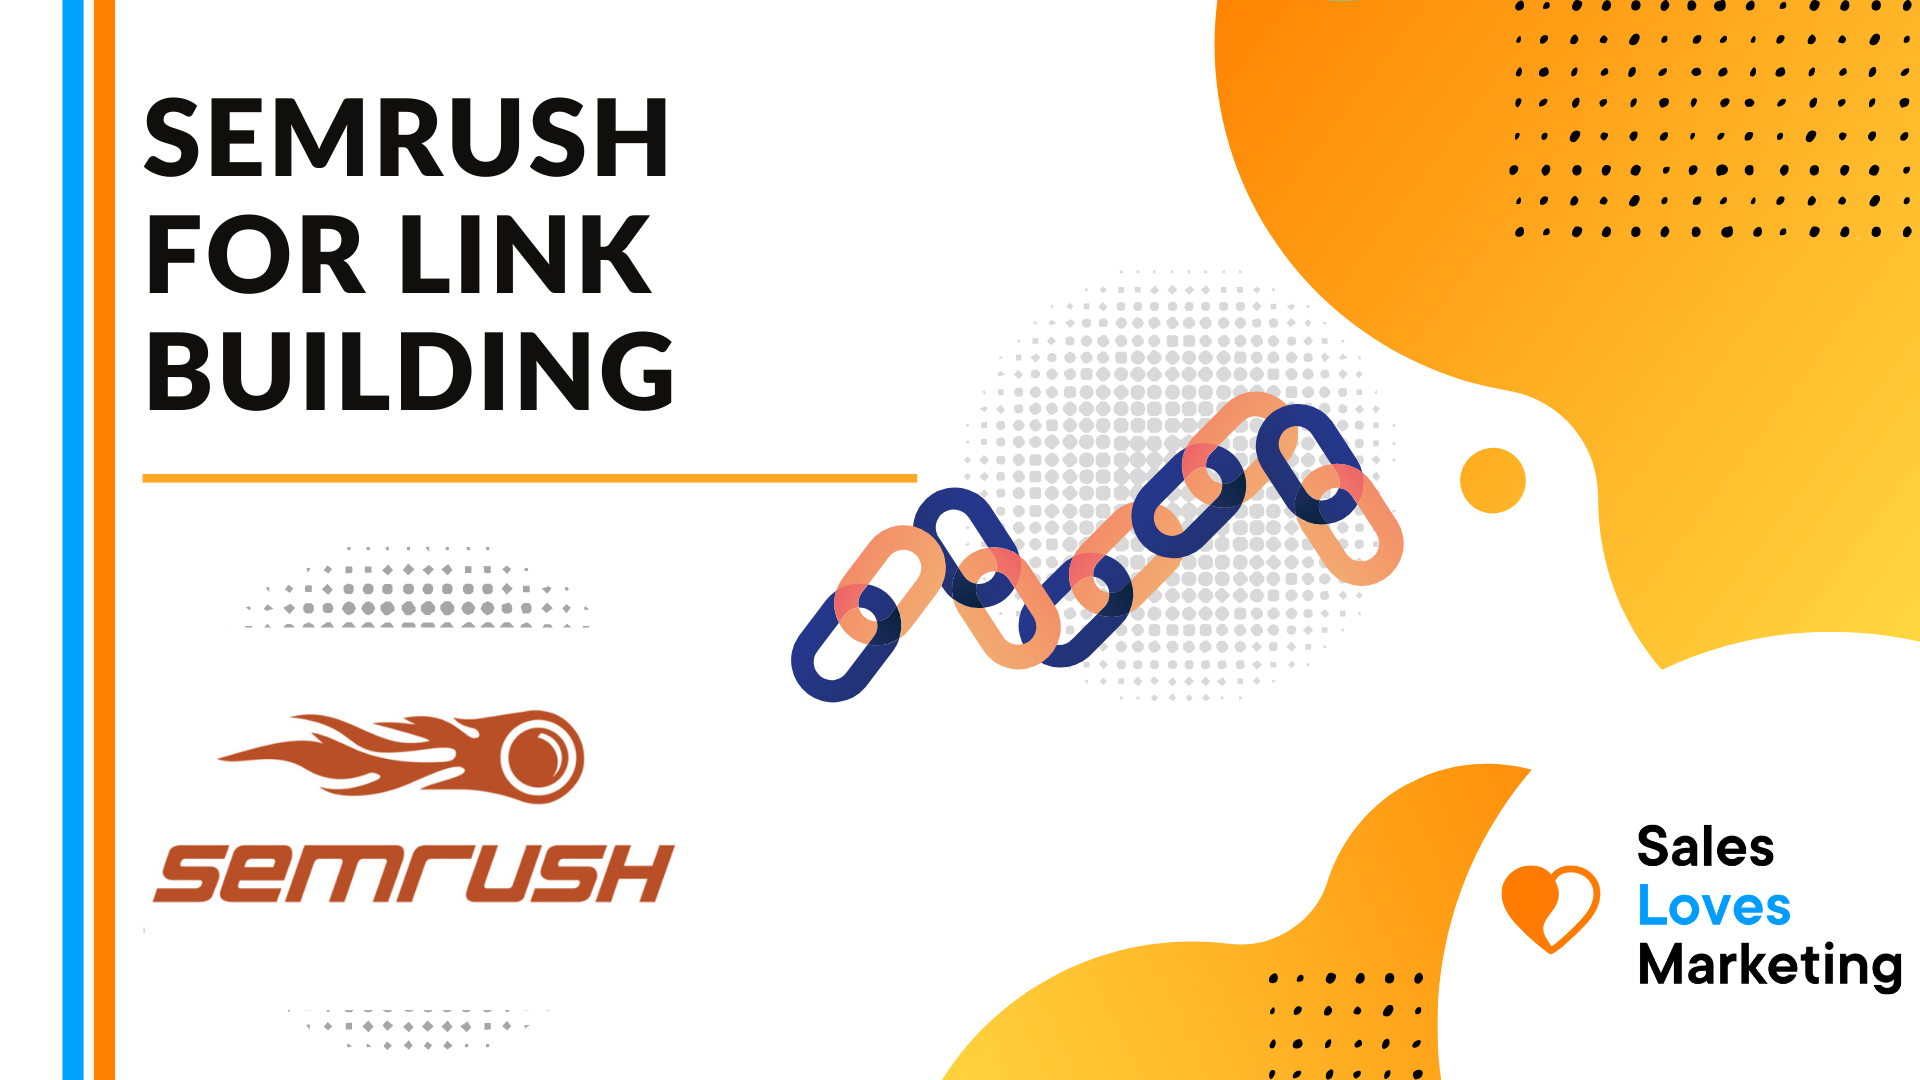 How to Use SEMRUSH For Link Building - Full Guide For Beginners